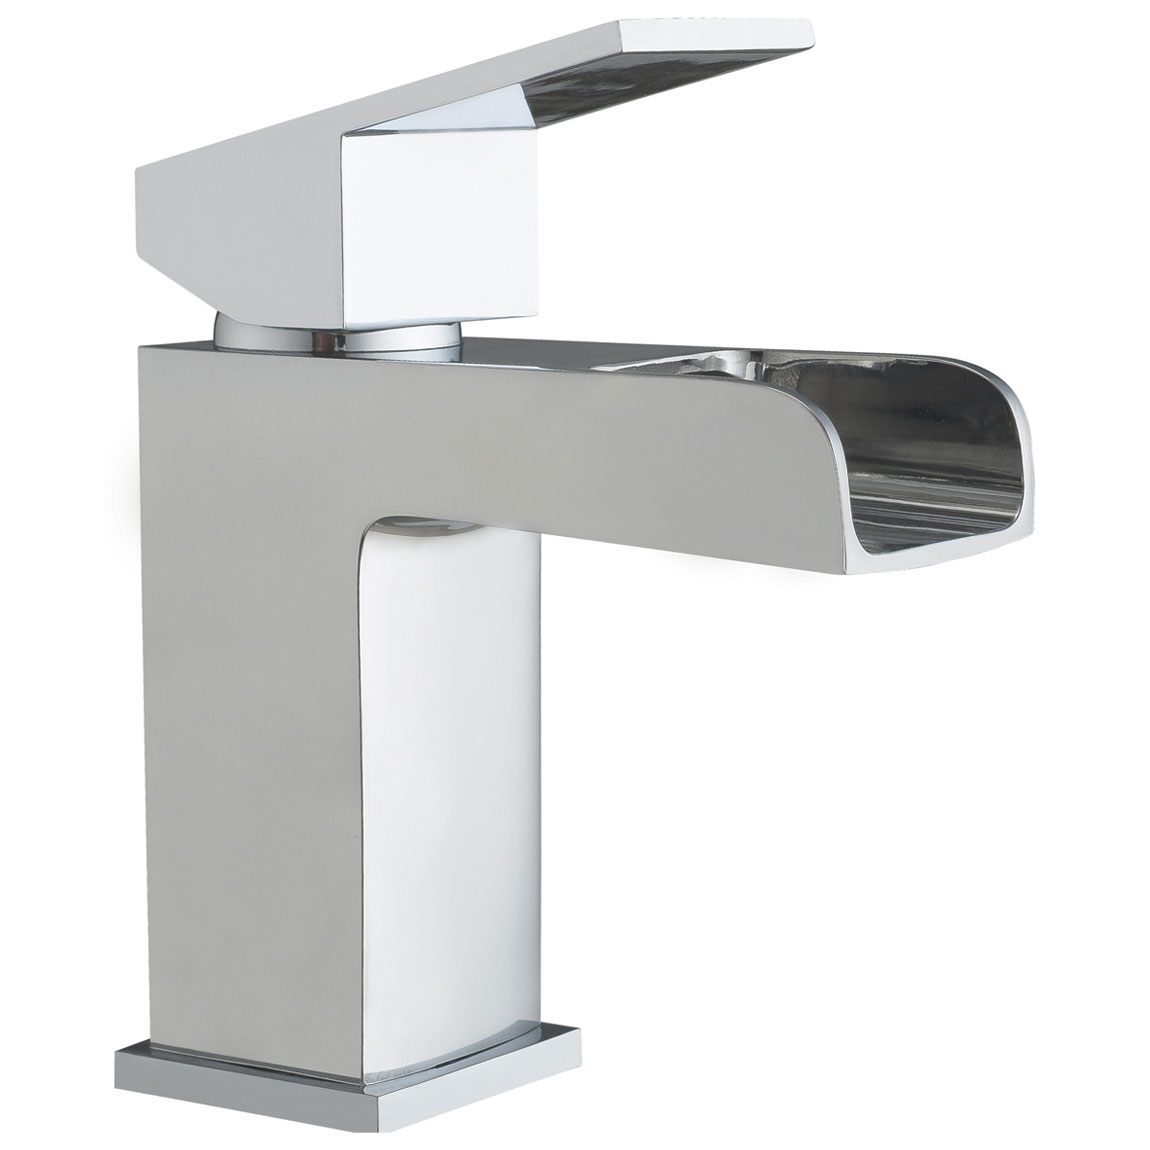 JTP Gleam Basin Mixer Tap with Click Clack Waste Single Handle - Chrome